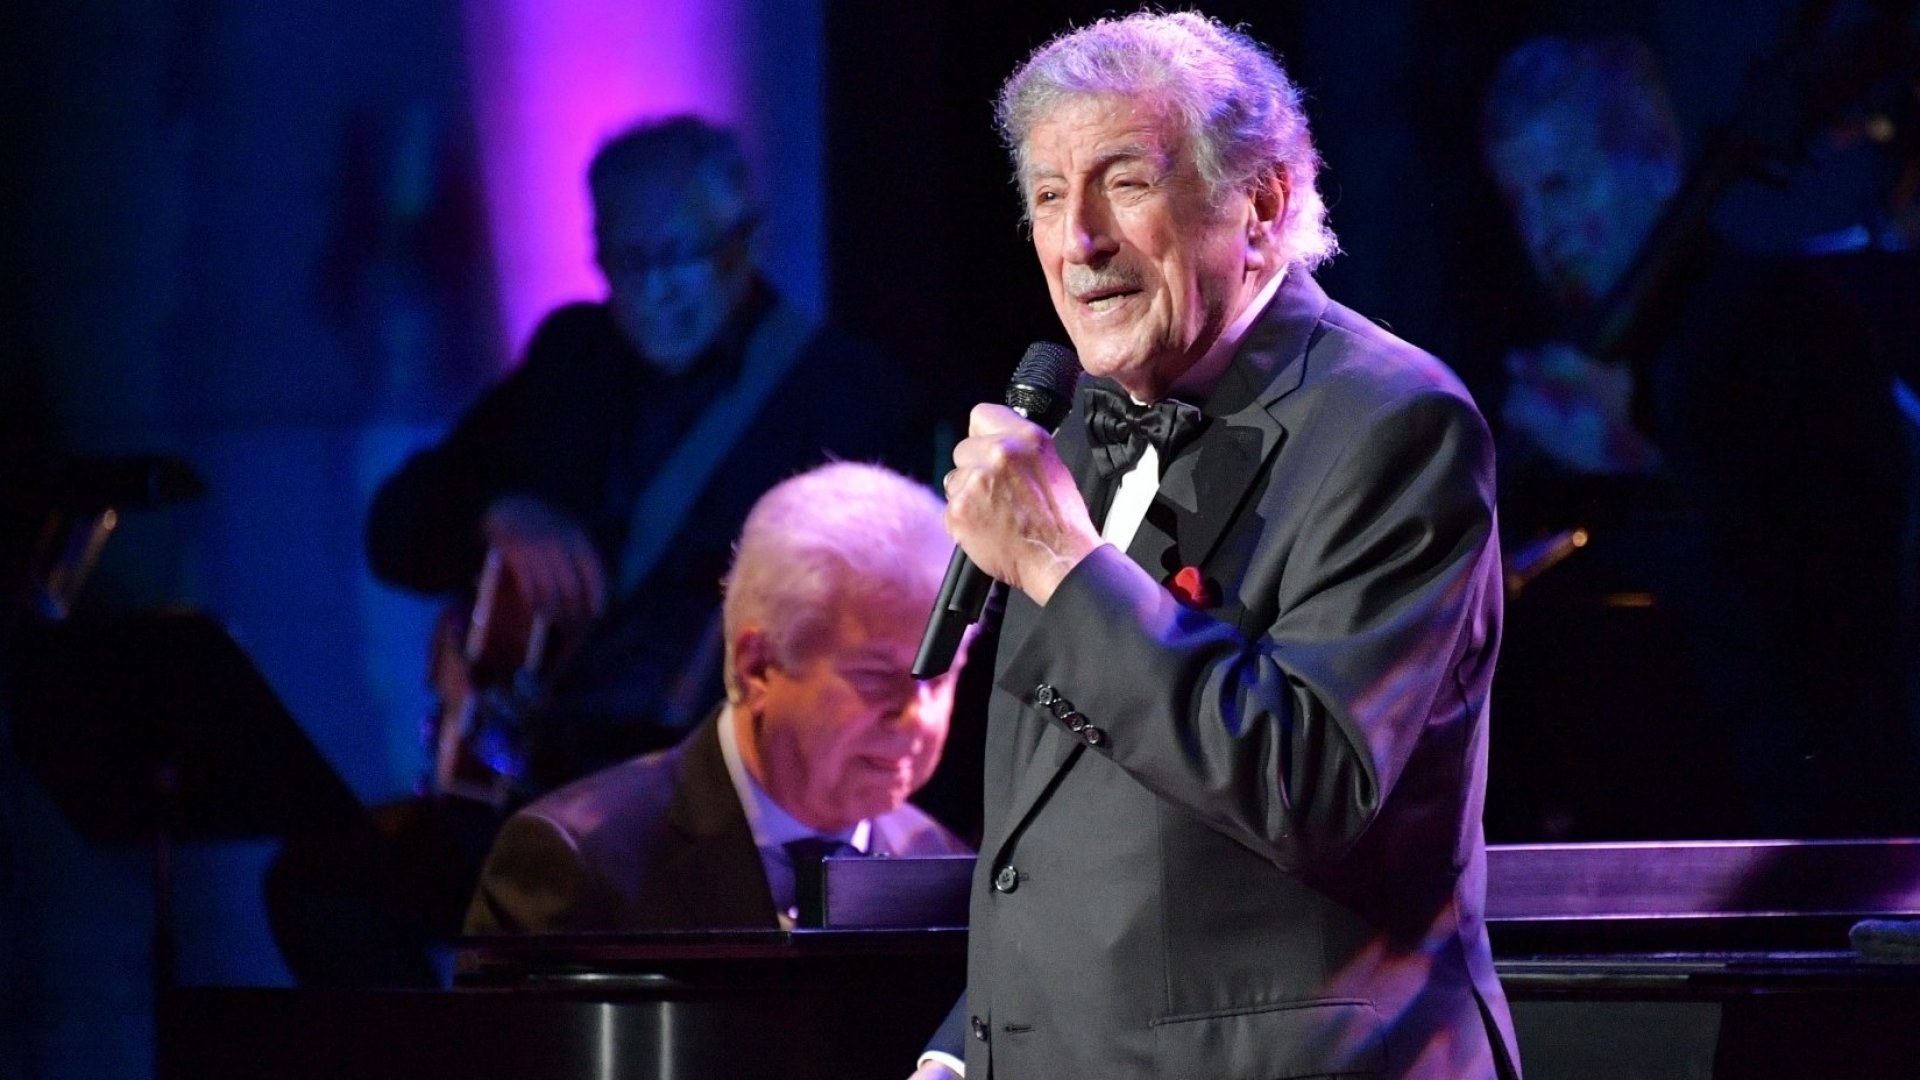 Timeless Lessons About Career Success and Happiness From Jazz Legend Tony Bennett